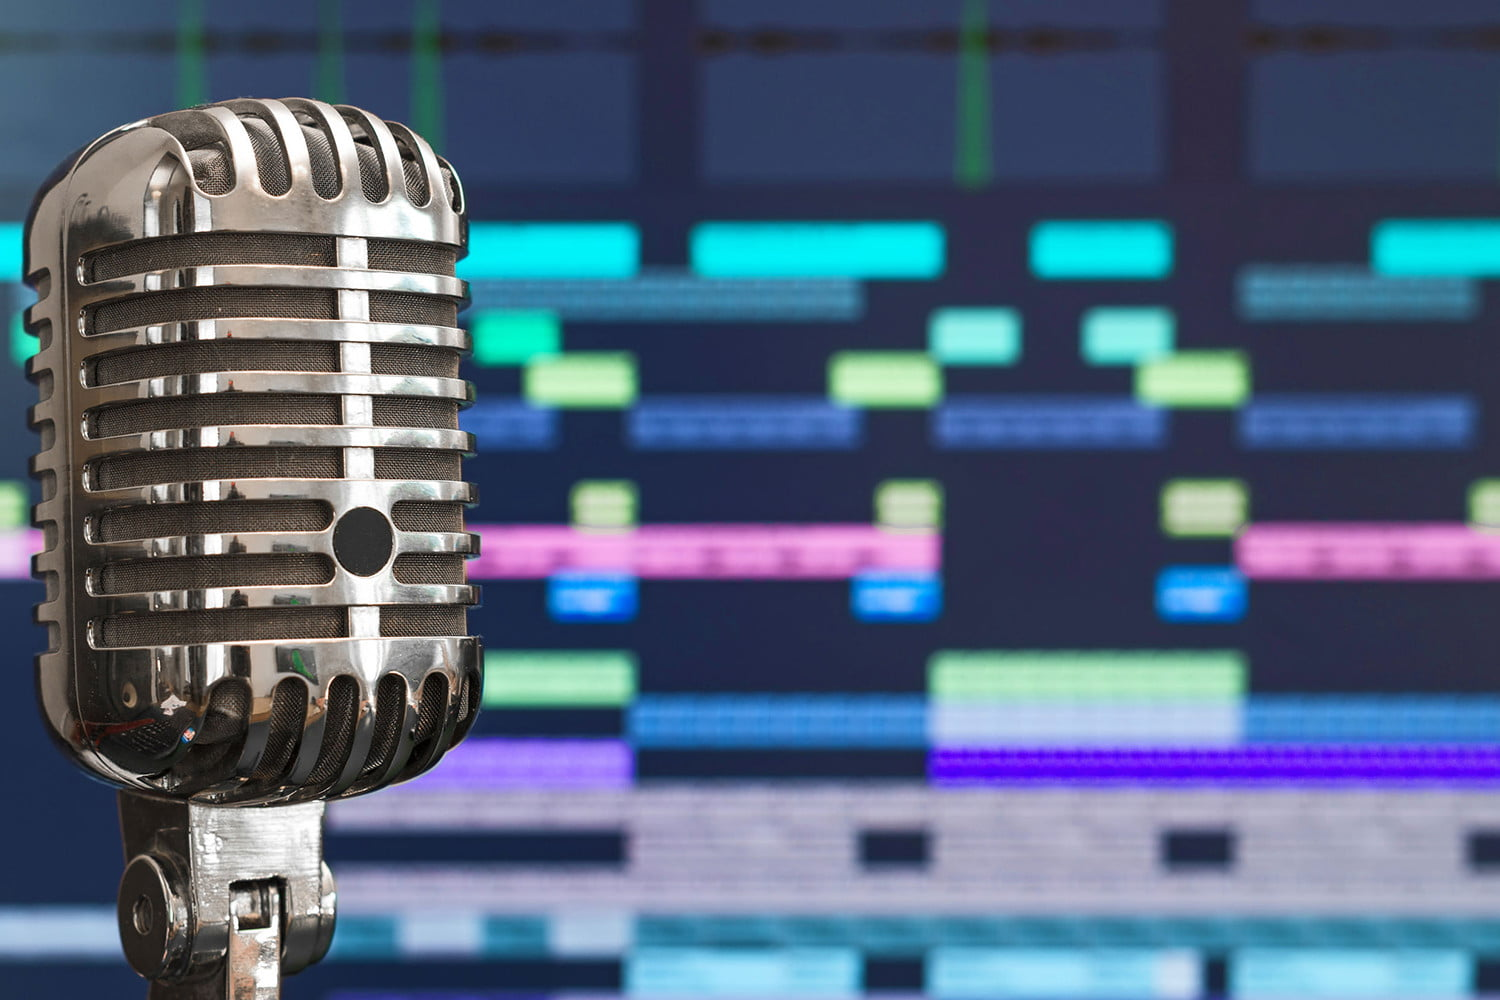 best free voice recording software for windows 10